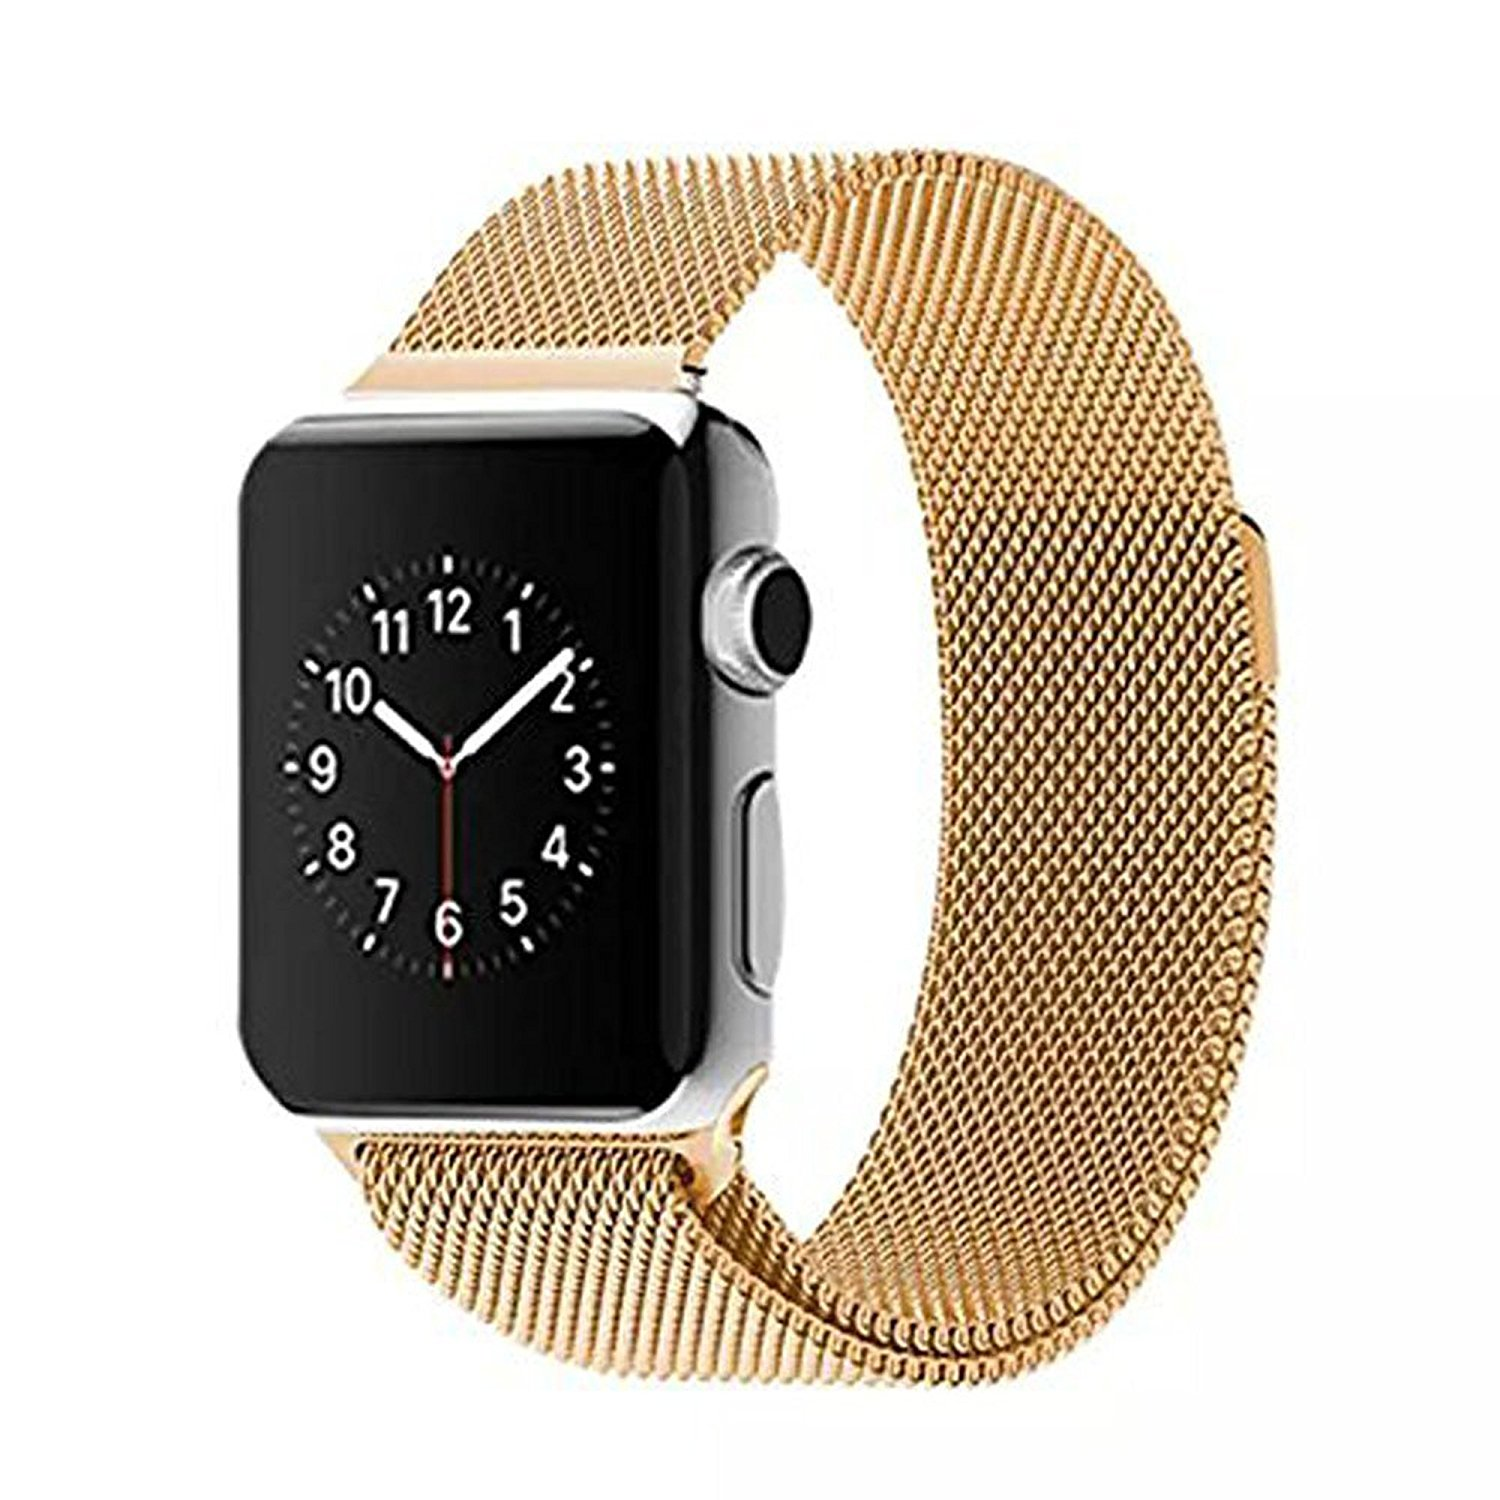 38mm Apple Watch Band Rose Gold, Imikoko™ 38mm Magnetic Apple Watch Milanese Loop Band, Stainless Steel Bracelet Strap Replacement with Strong Magnet Buckle for Apple Watch (Gold)